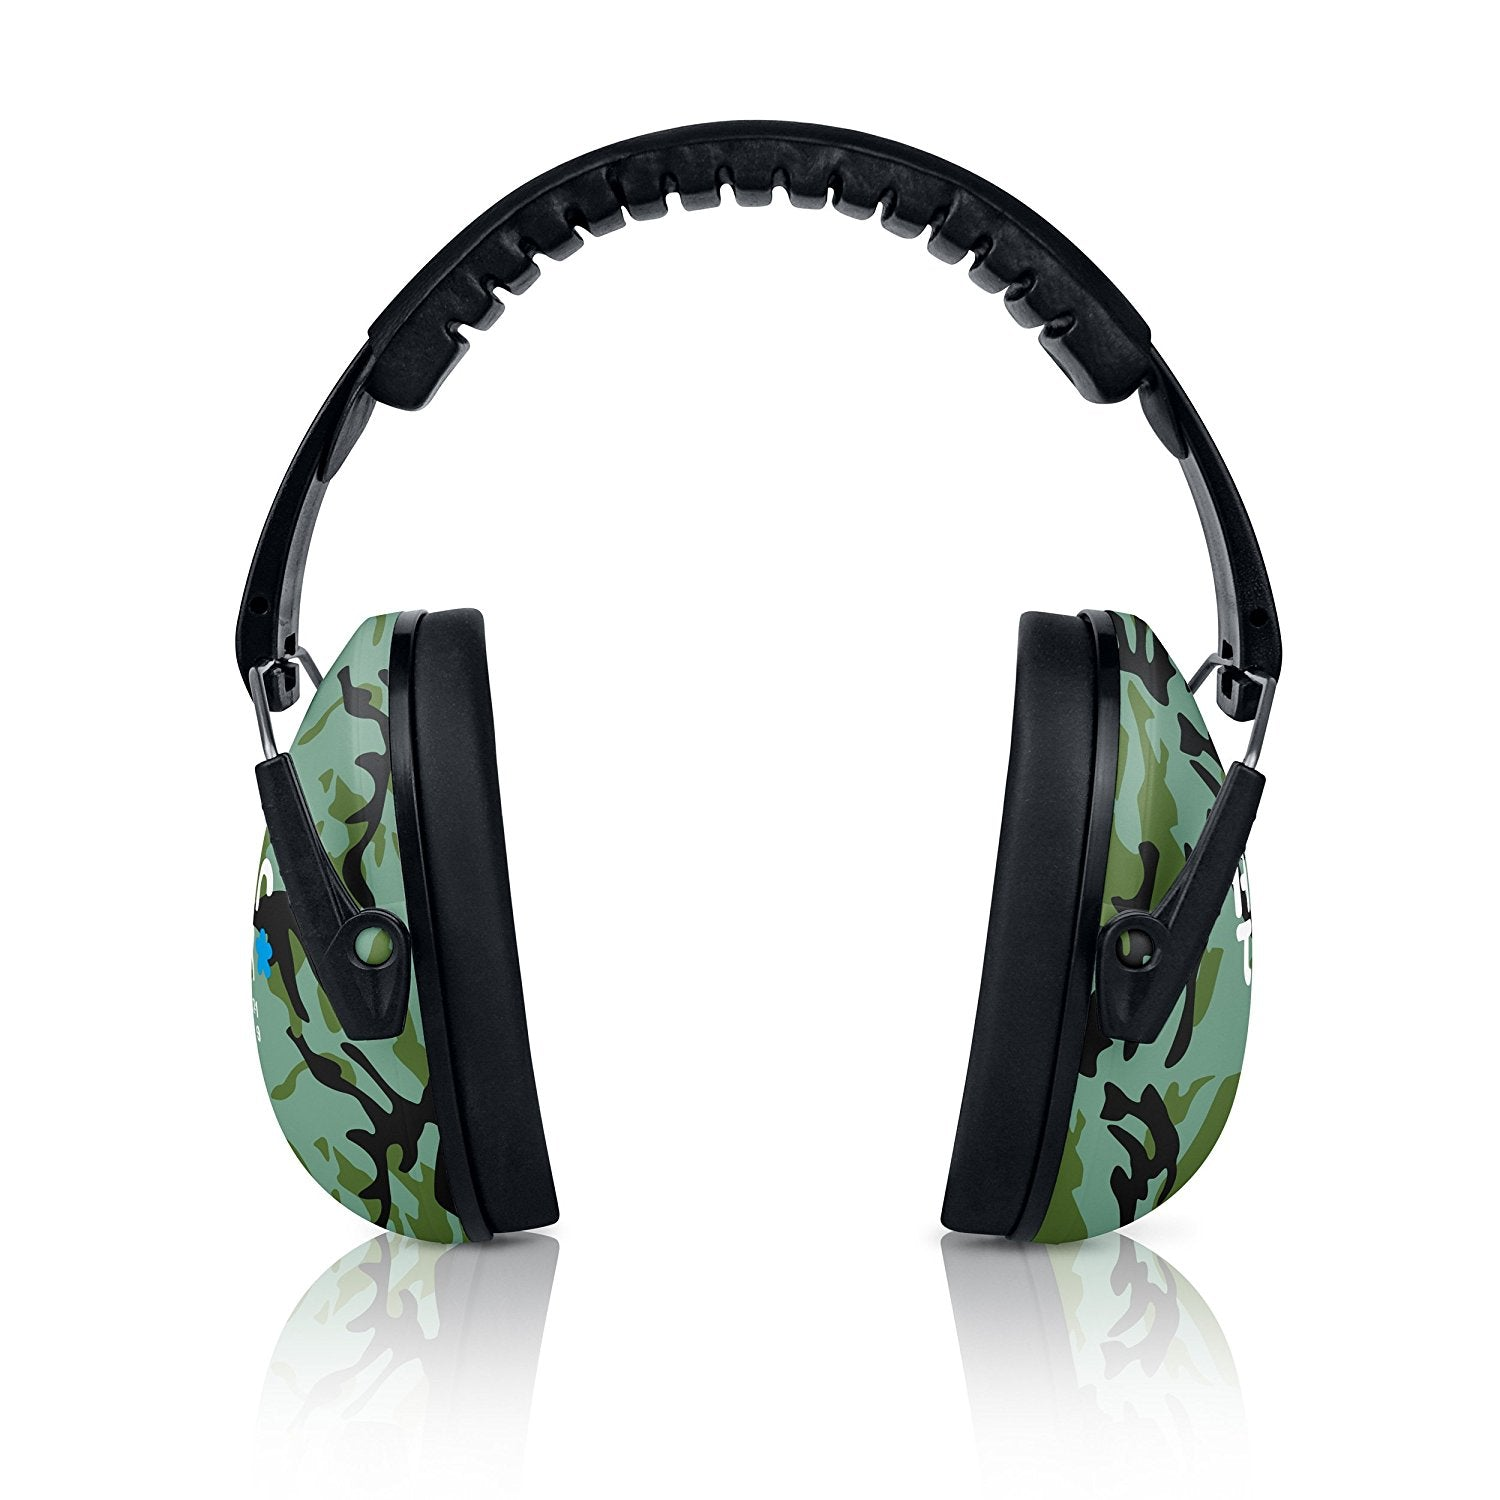 Senna Earmuffs Hearing Protection with Travel Bag